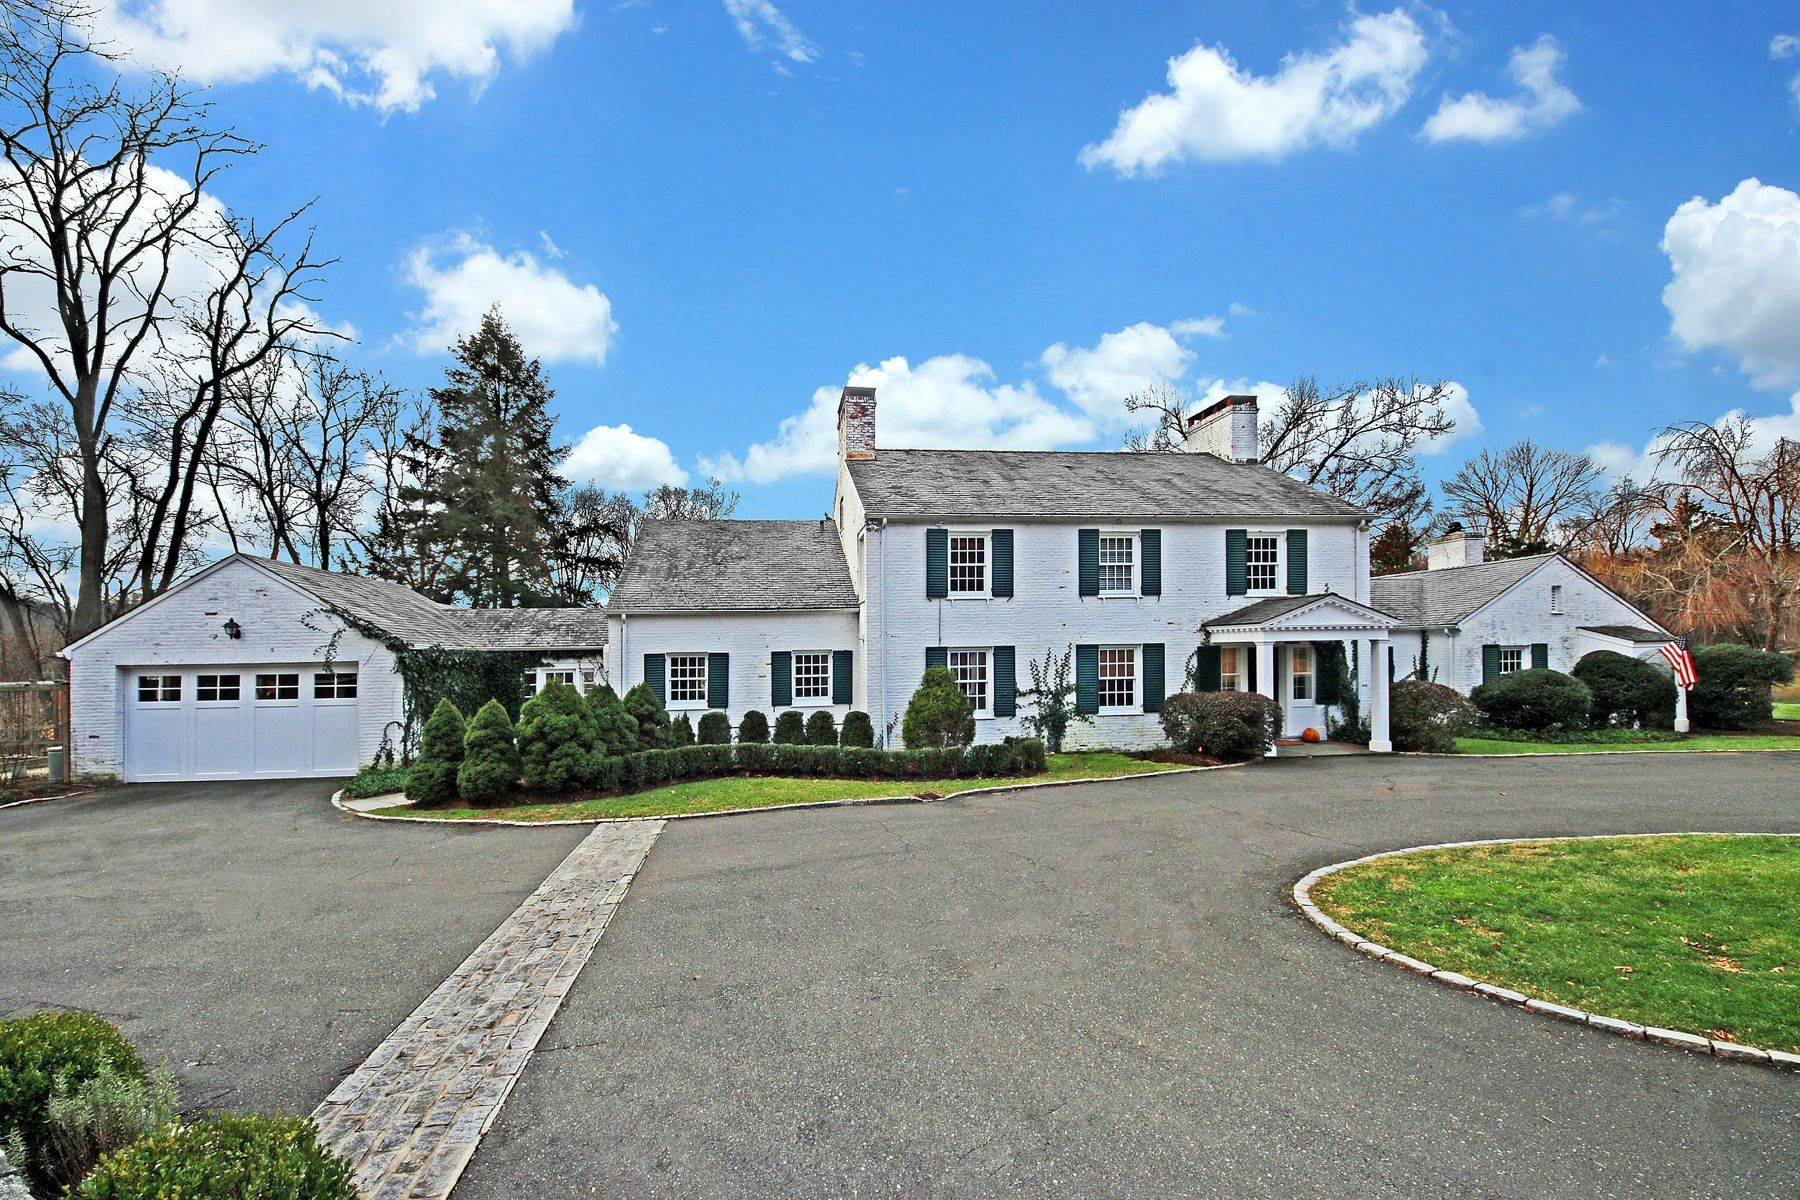 Single Family Home for Sale at Spectacular Country Estate 36 Chestnut Woods Road Redding, Connecticut 06896 United States